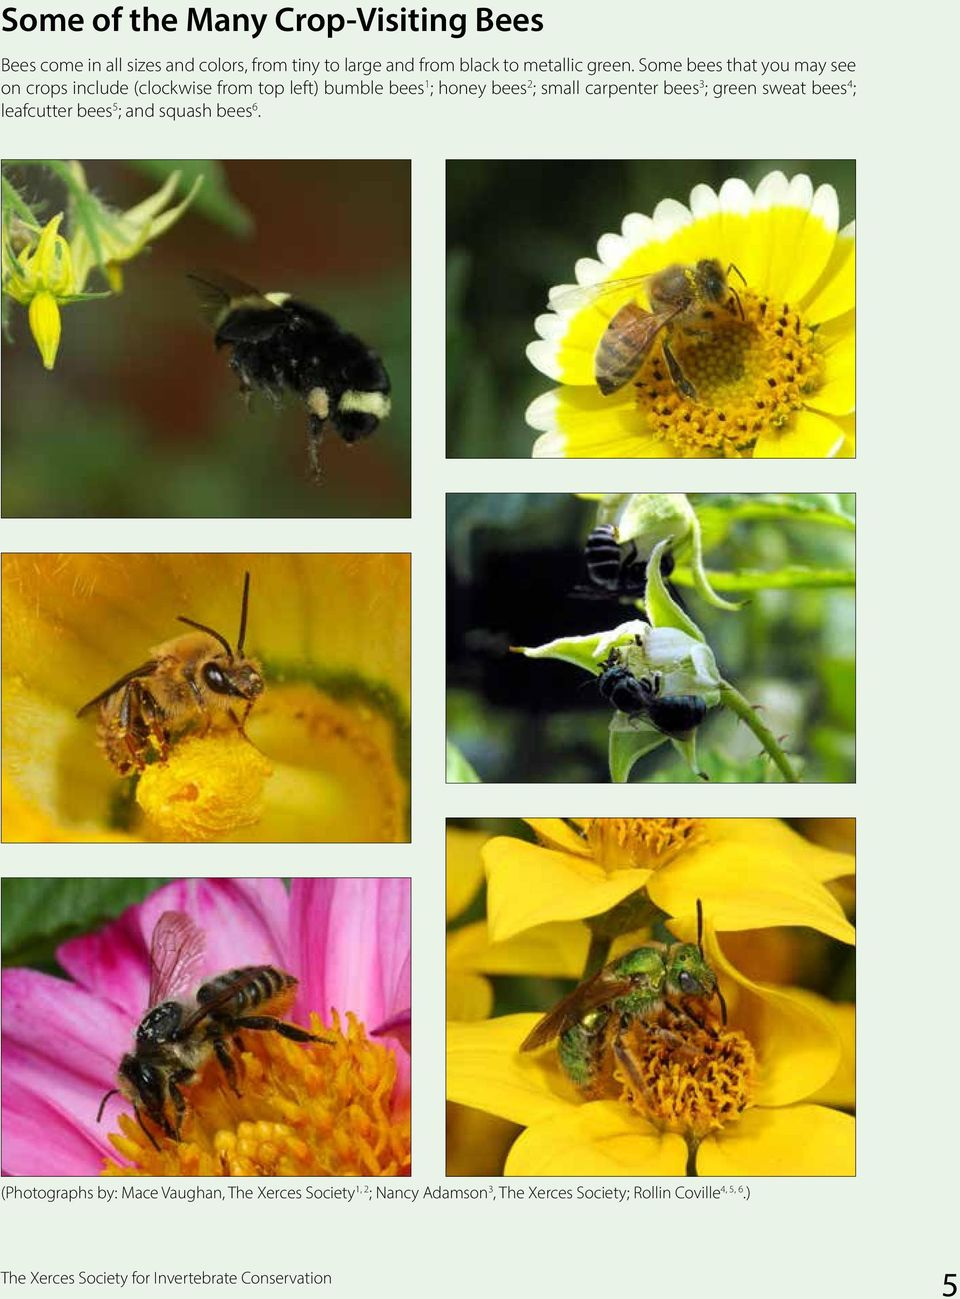 Some bees that you may see on crops include (clockwise from top left) bumble bees 1 ; honey bees 2 ; small carpenter